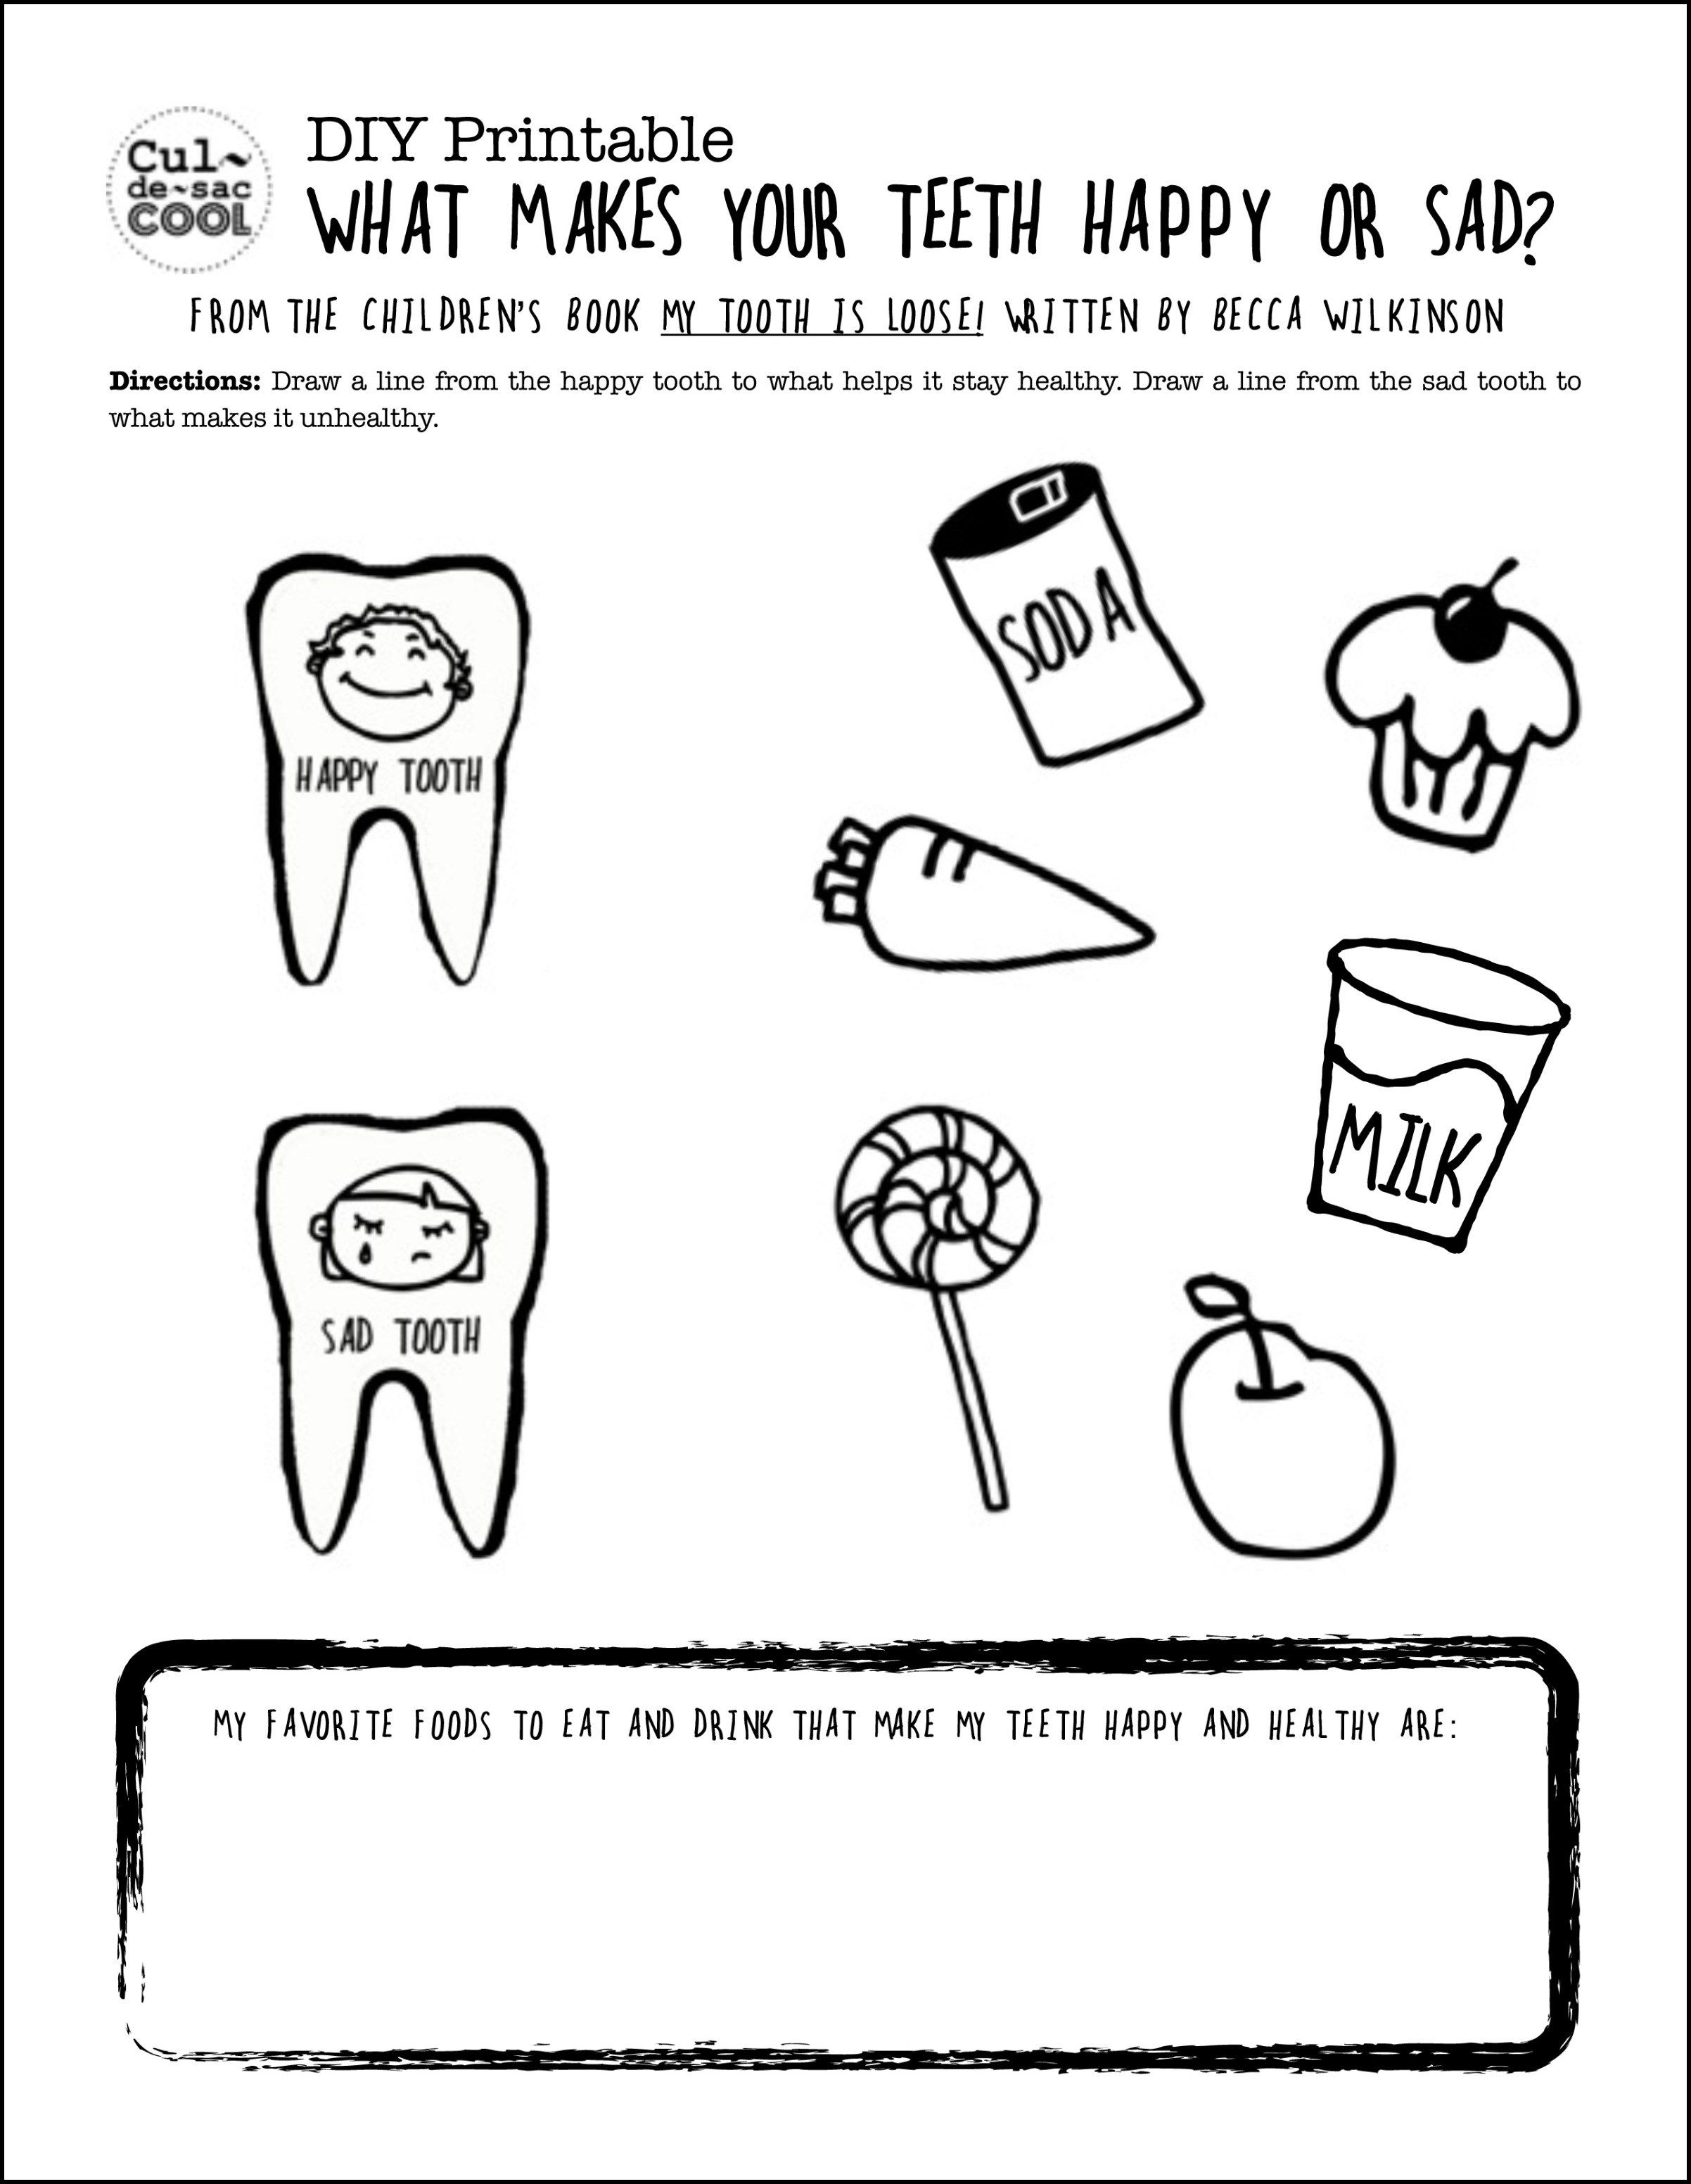 Diy Printable What Makes Your Teeth Happy Or Sad Teeth